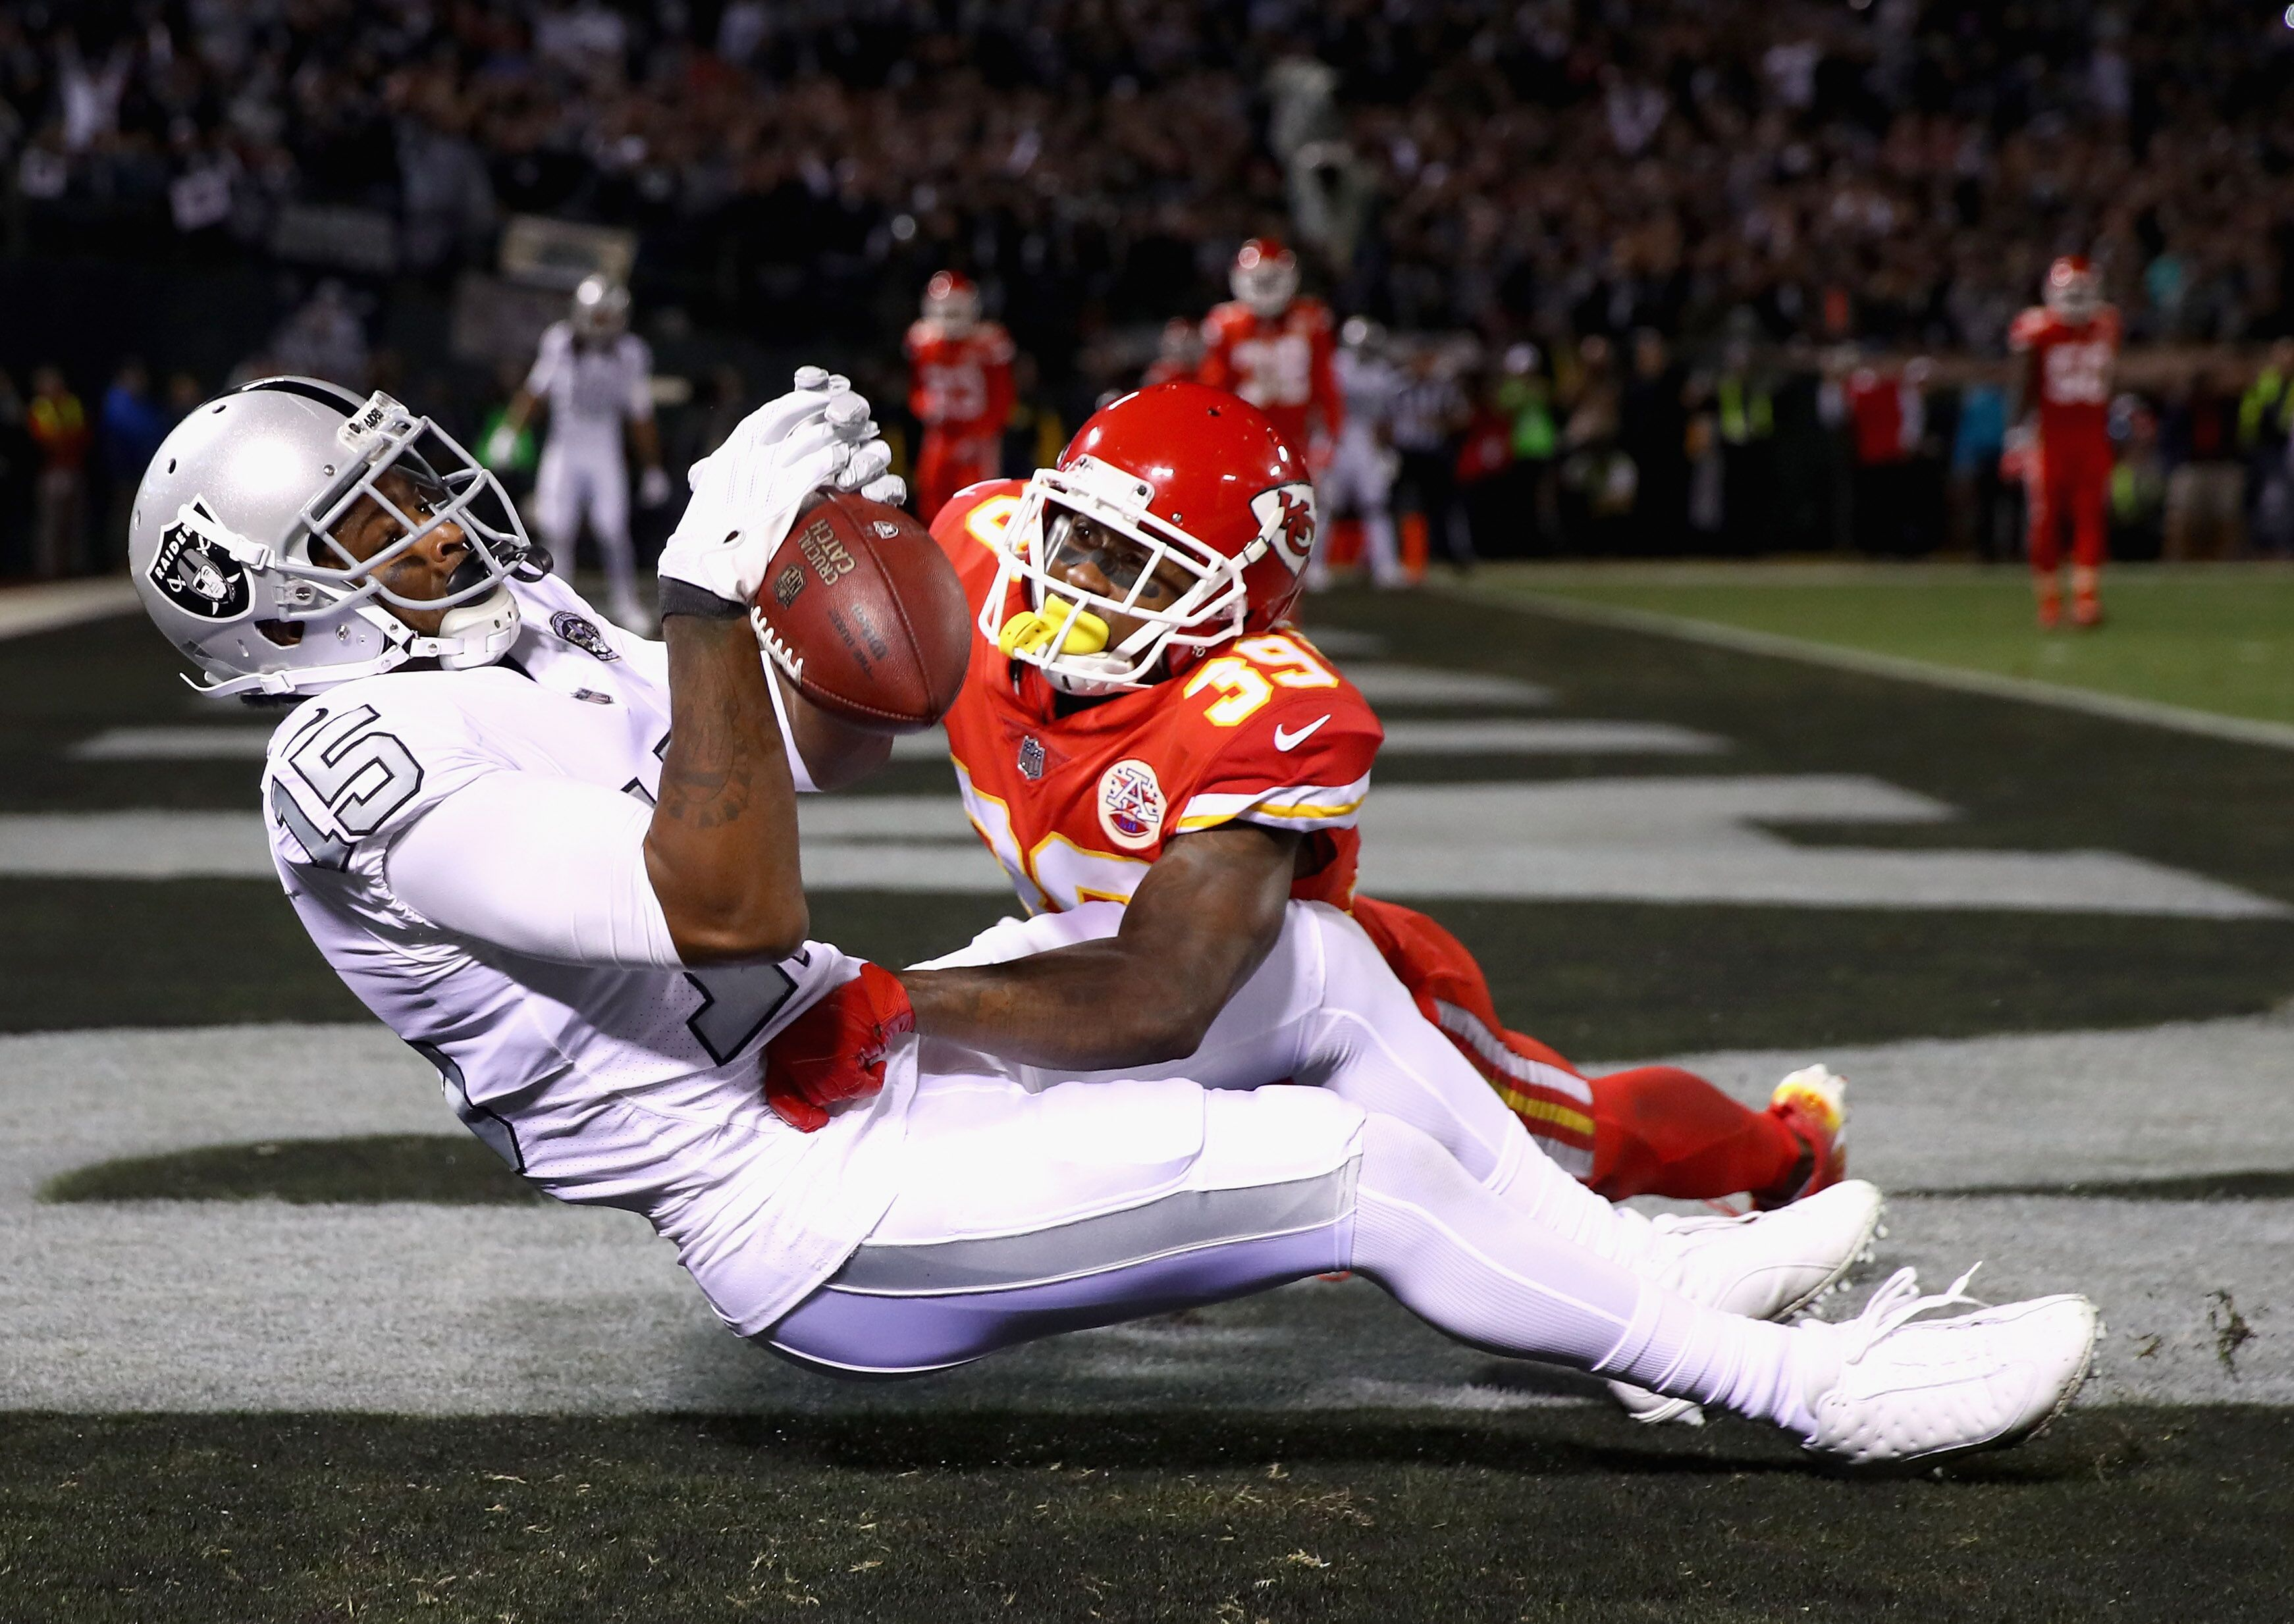 867546392-kansas-city-chiefs-v-oakland-raiders.jpg